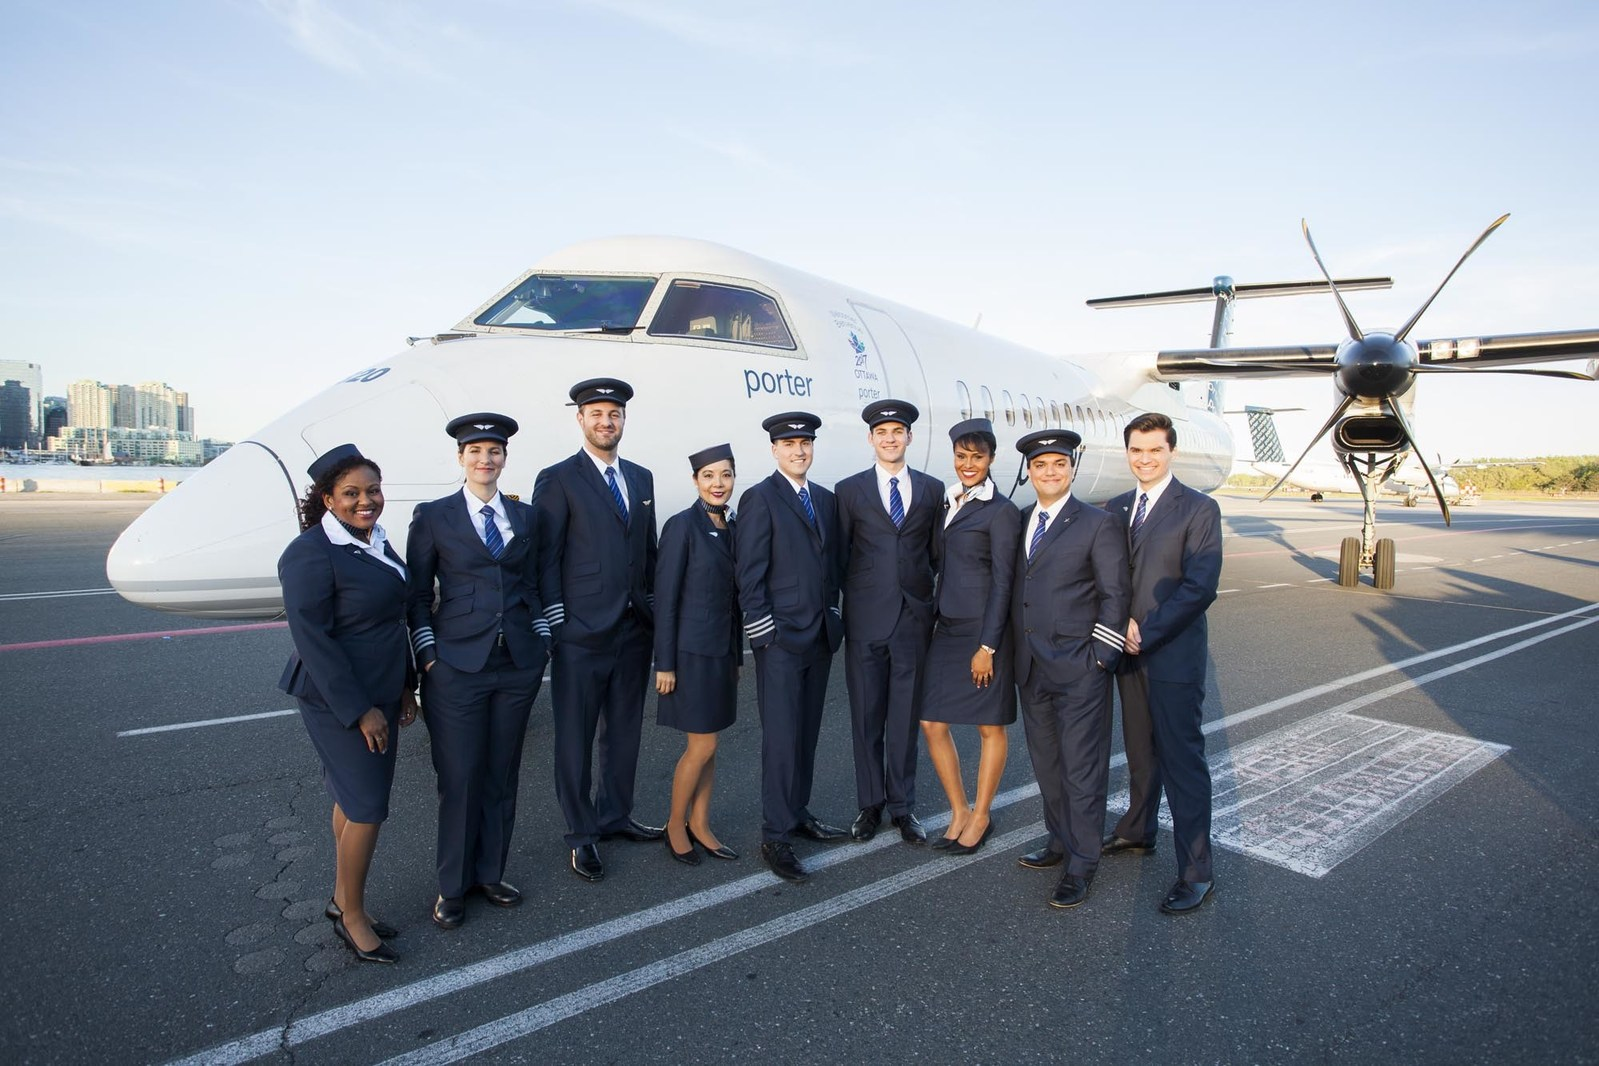 Pilots and flight attendants stand next to Porter Q400 plane.